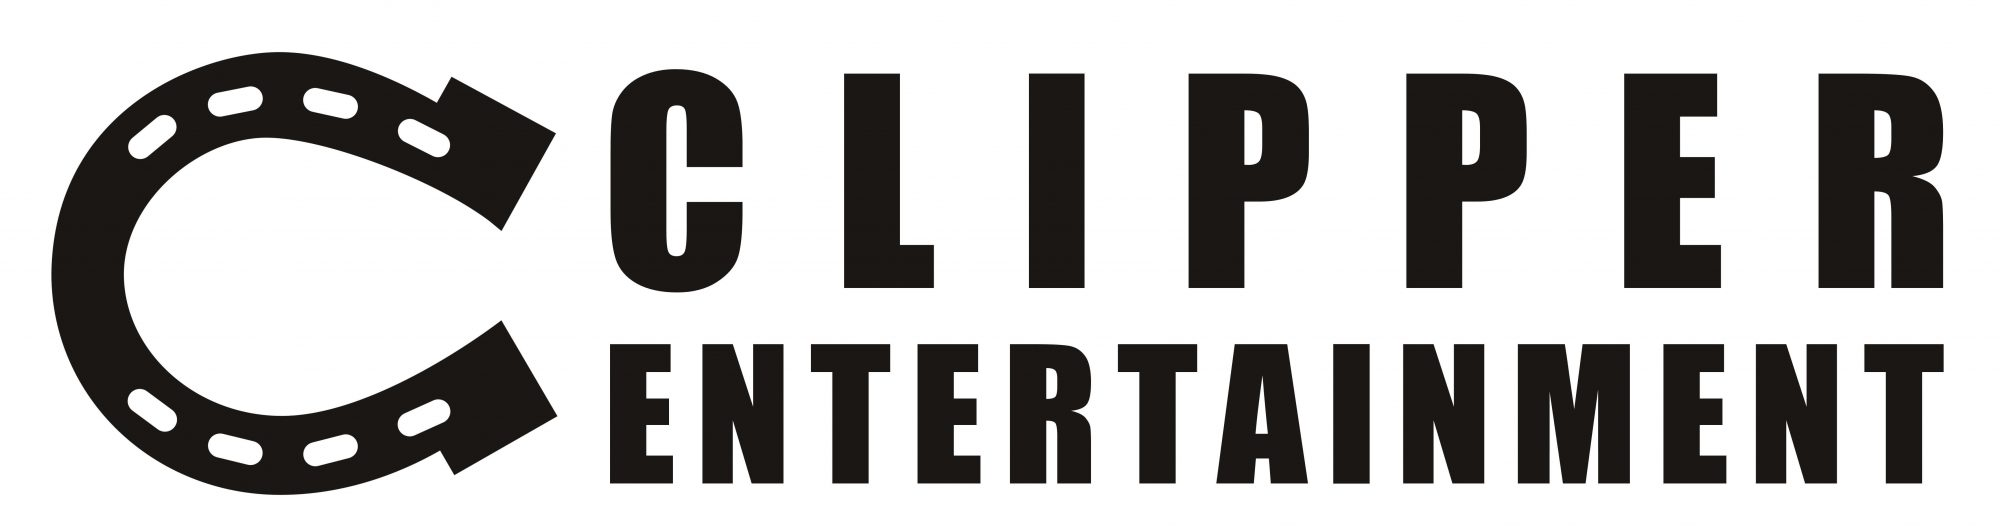 CLIPPER ENTERTAINMENT